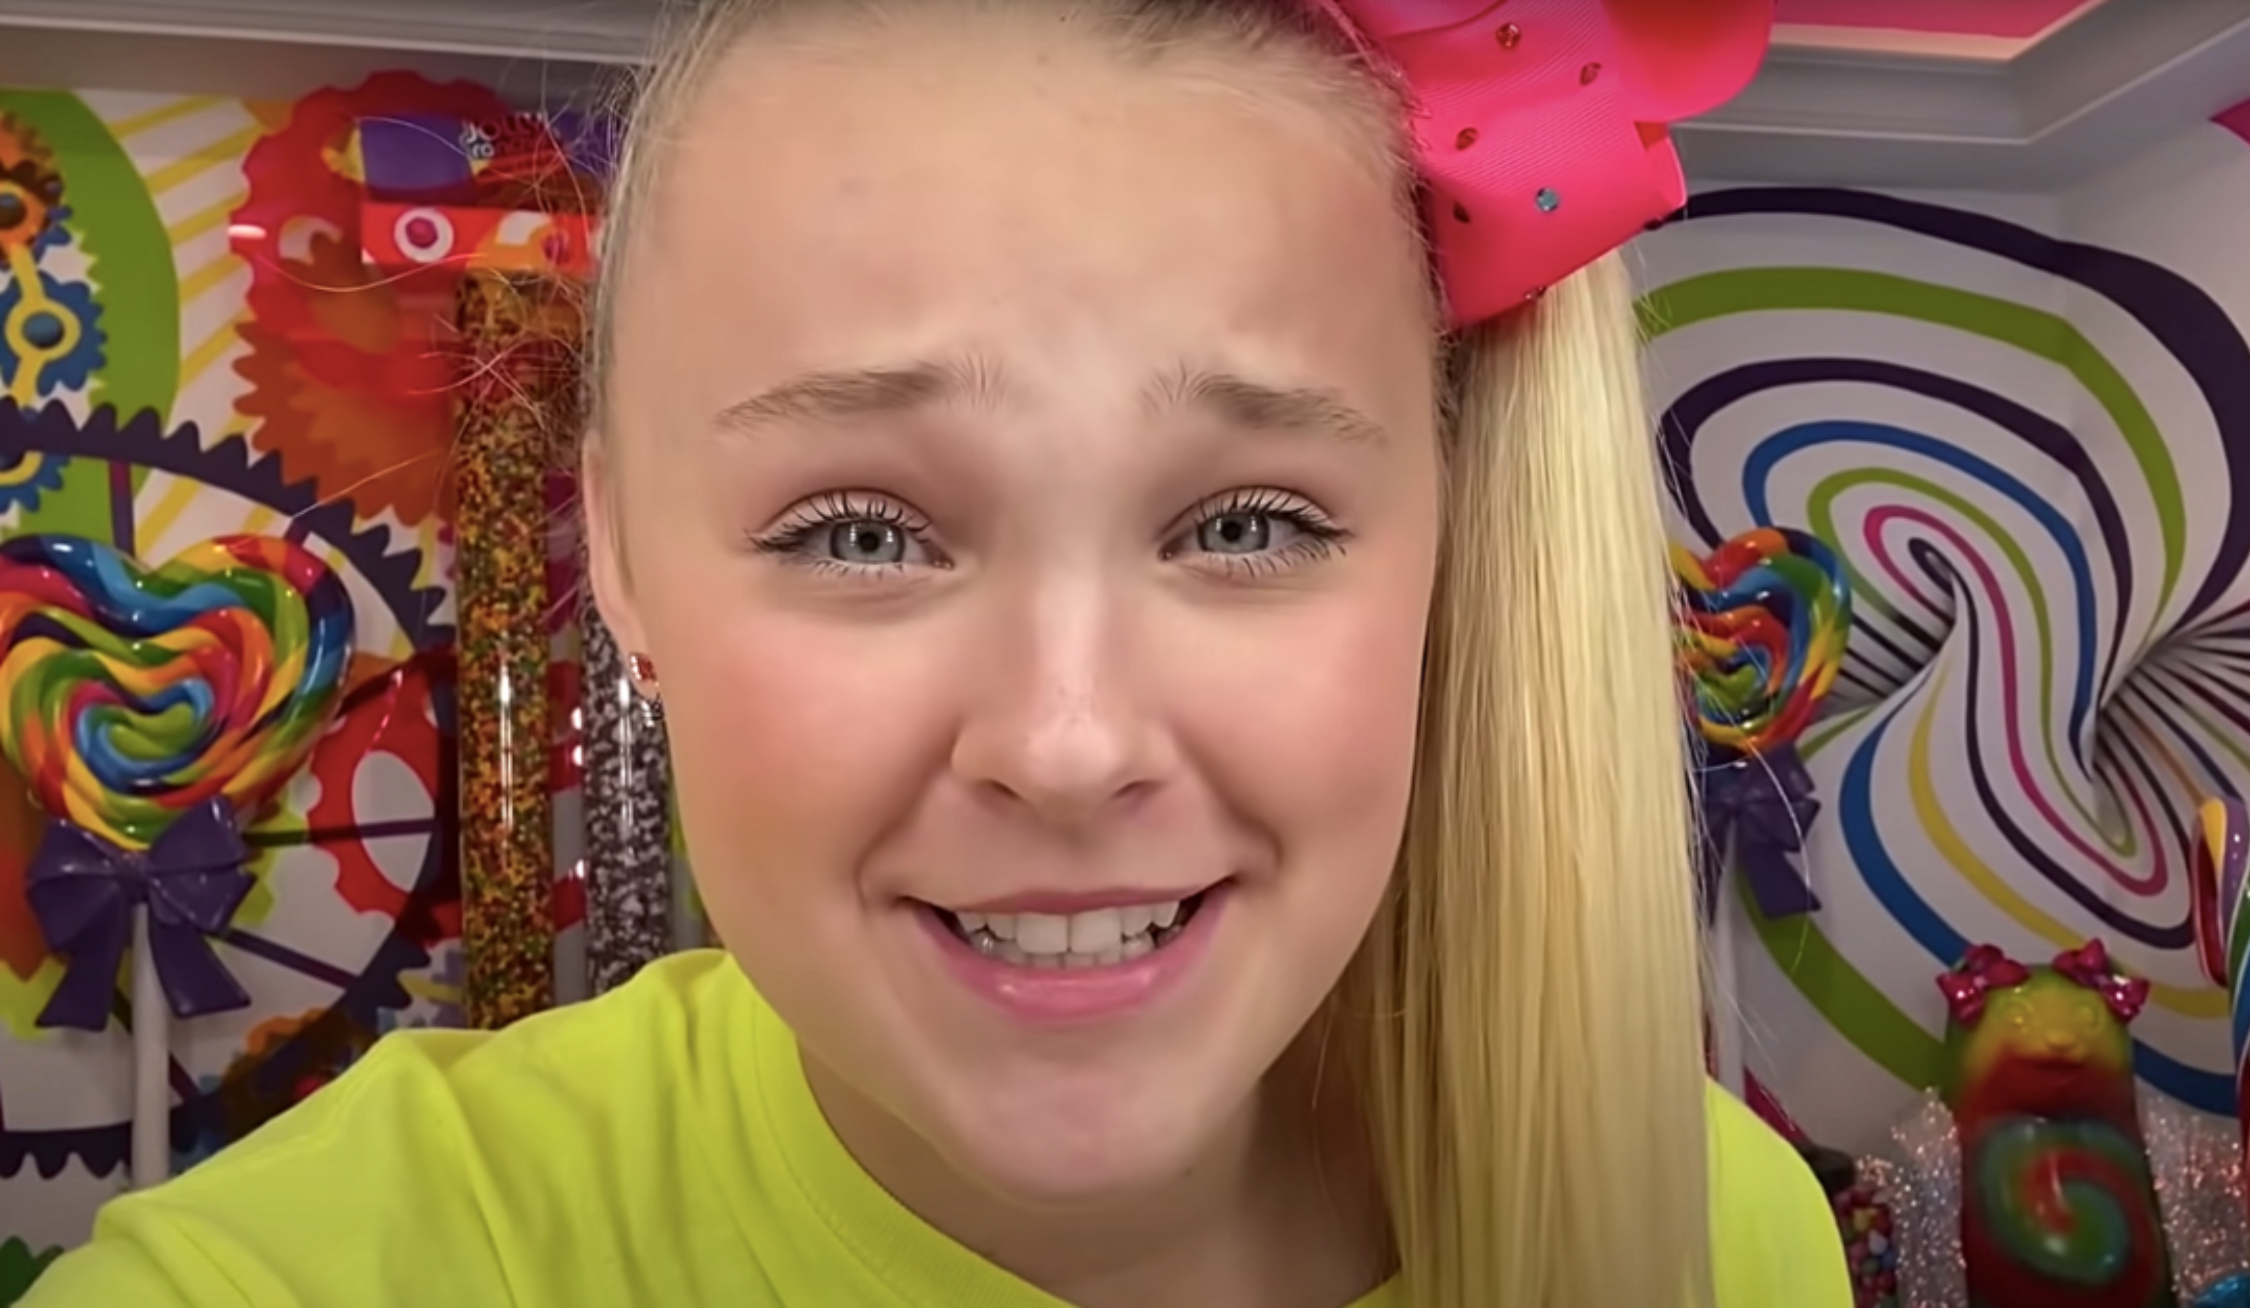 JoJo Siwa, a white teen girl, has her blond hair in a high ponytail and bow on the top of her head. She holds the camera close to her face for a selfie video.